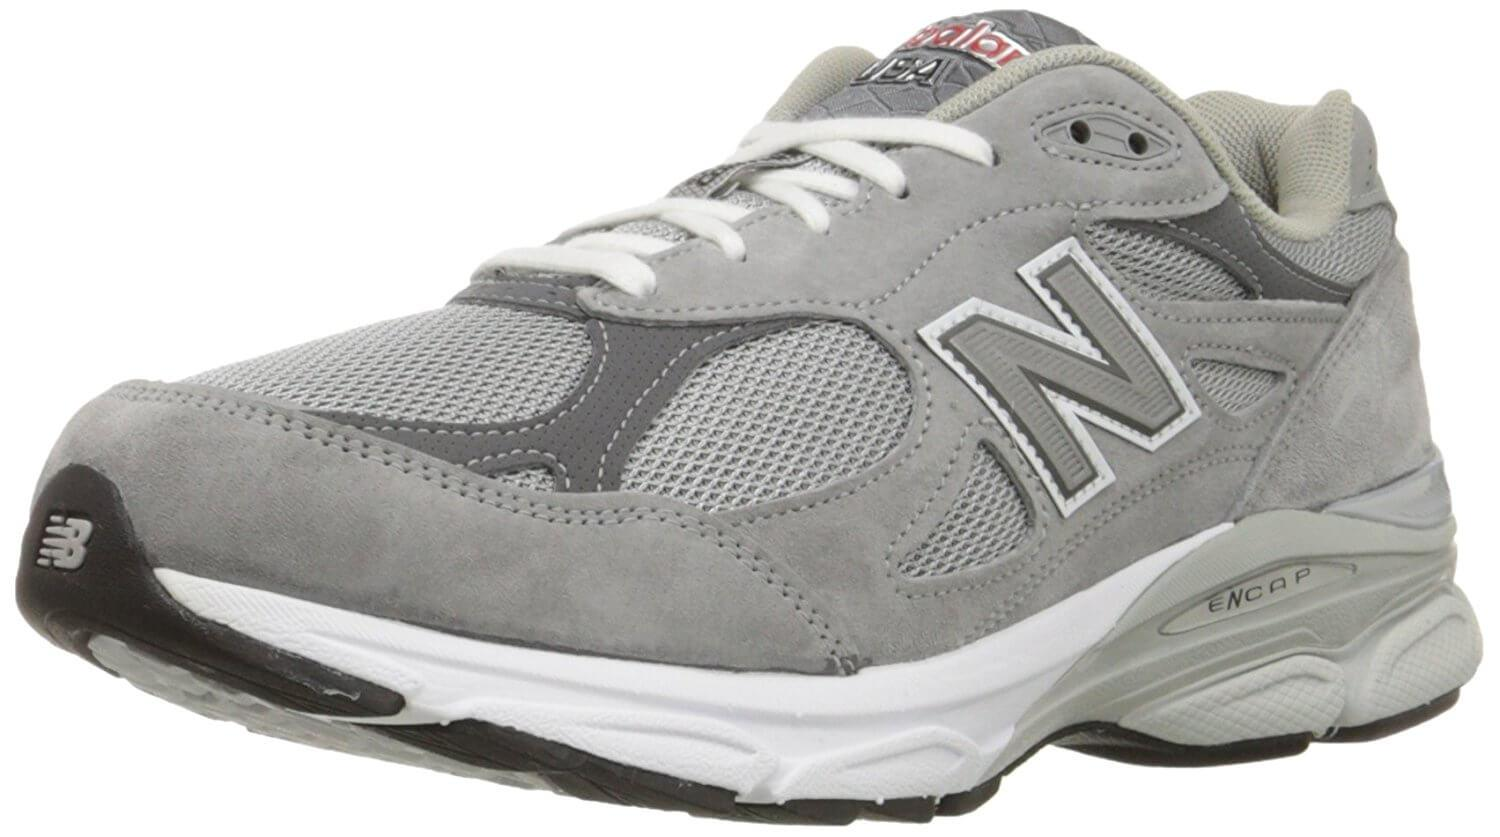 A three quarter perspective of the New Balance 990v3 running shoe ...